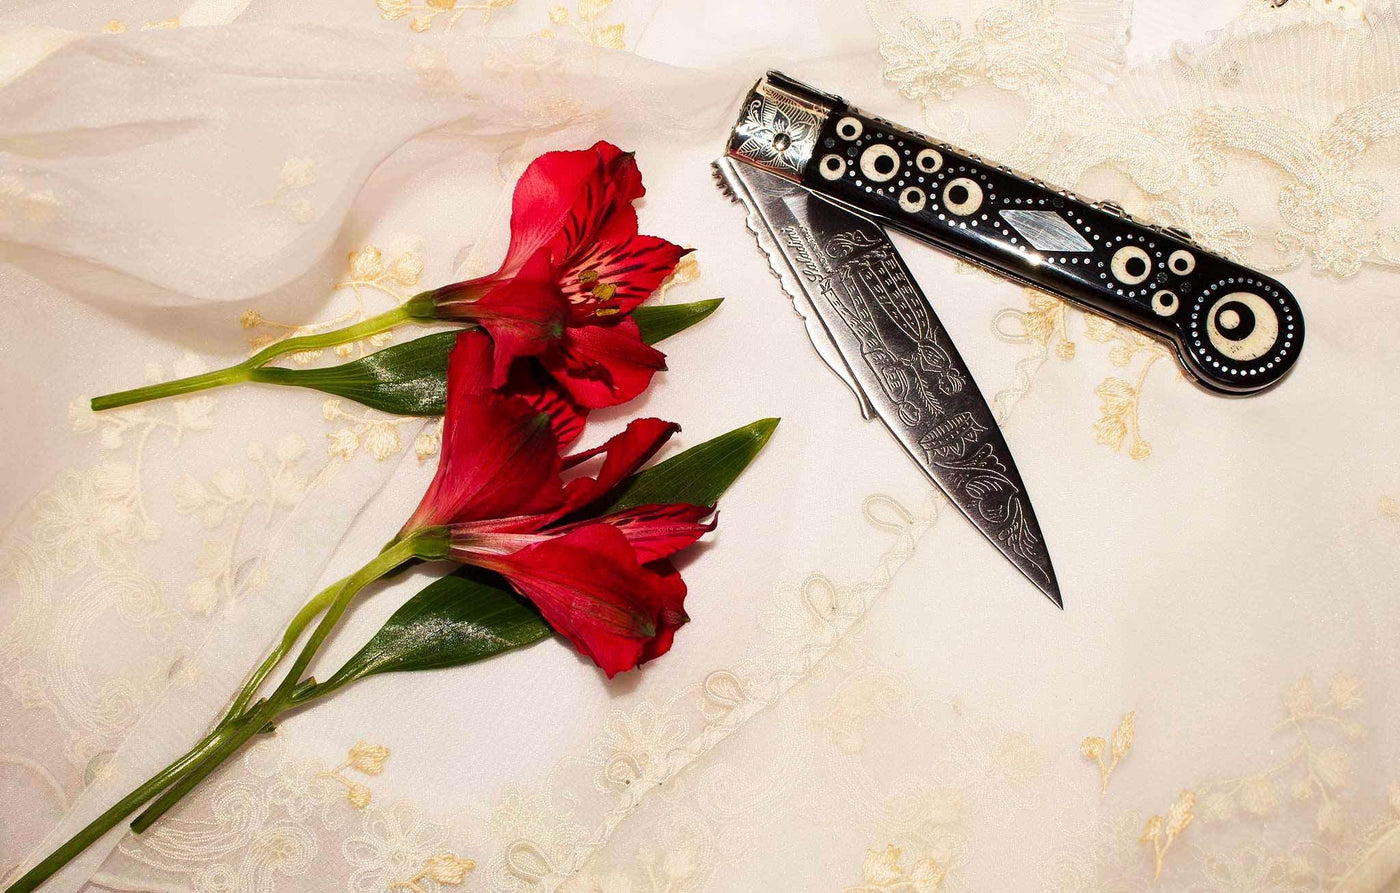 Coltello del Amore ( Wedding Knife or Lover's Knife) by Saladini: Black